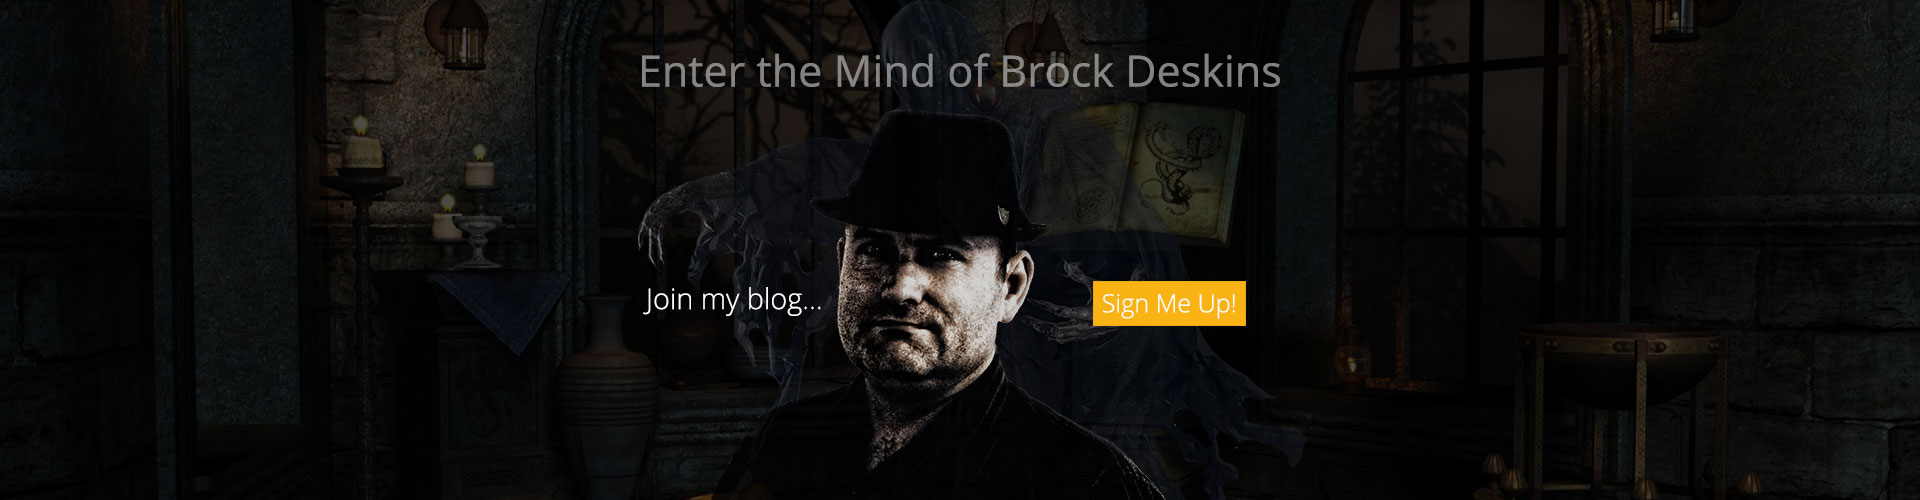 Brock Deskins' Blog